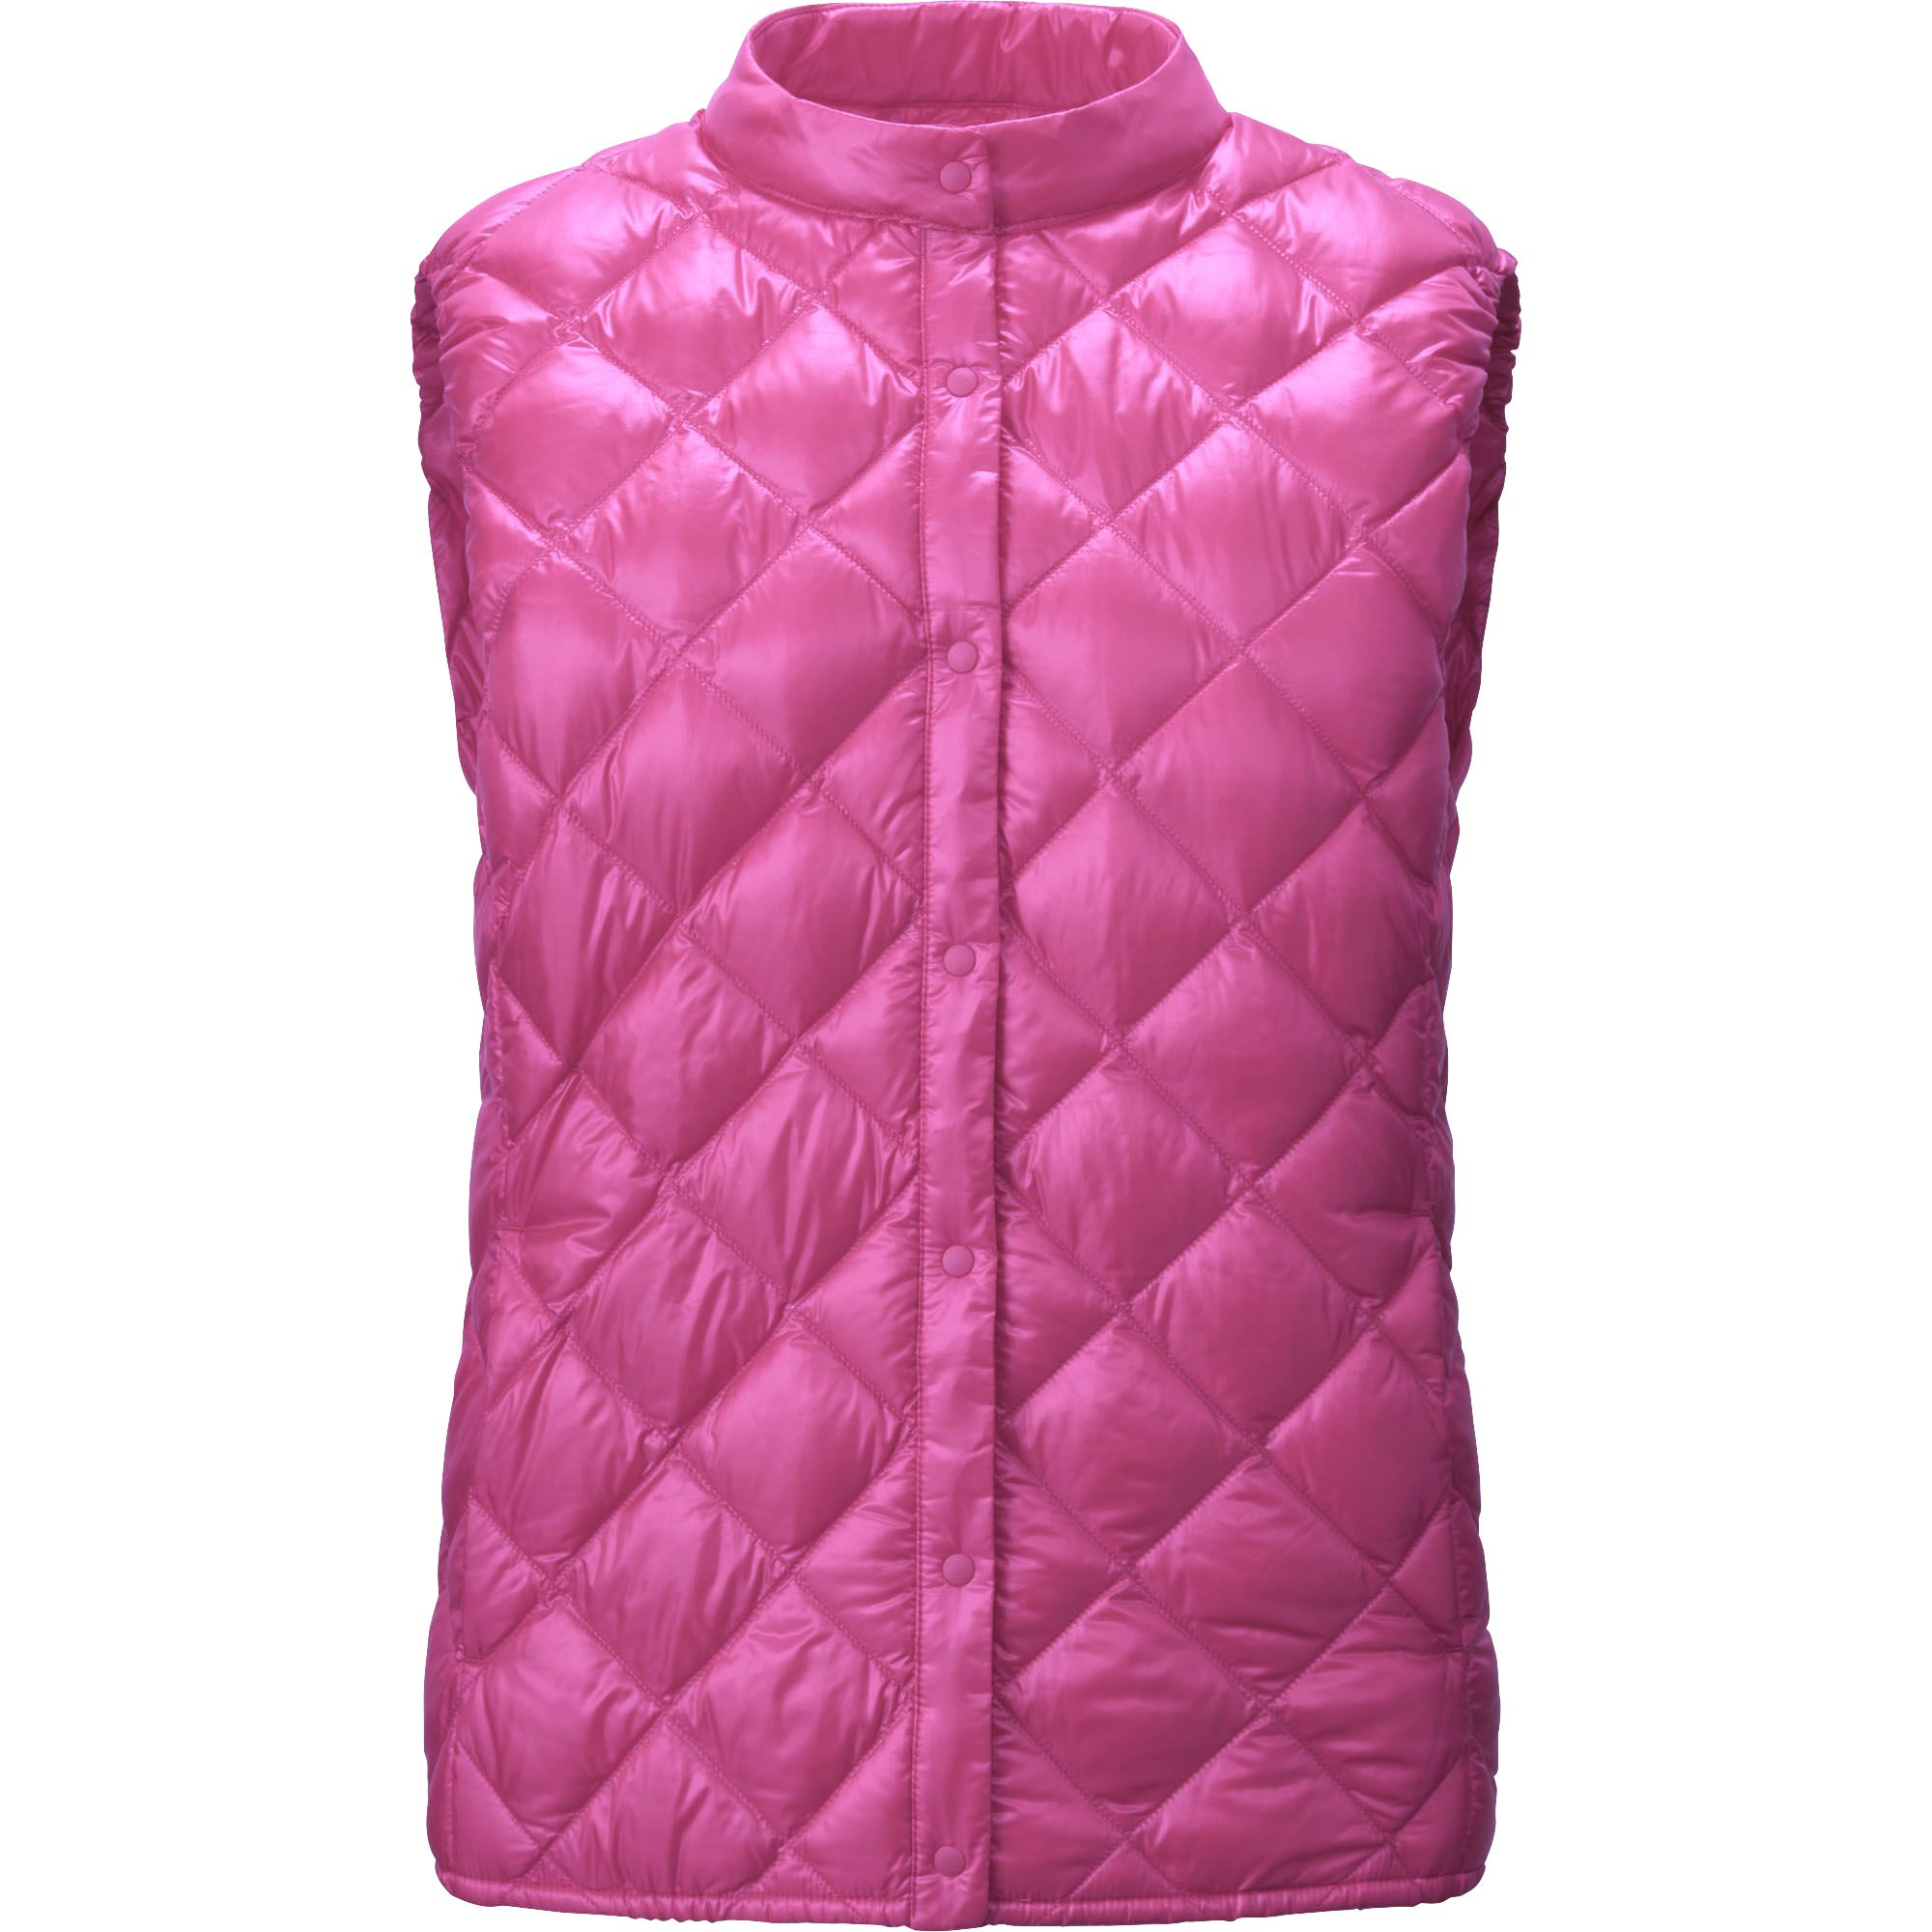 Lyst Uniqlo Women Ultra Light Down Compact Quilted Vest